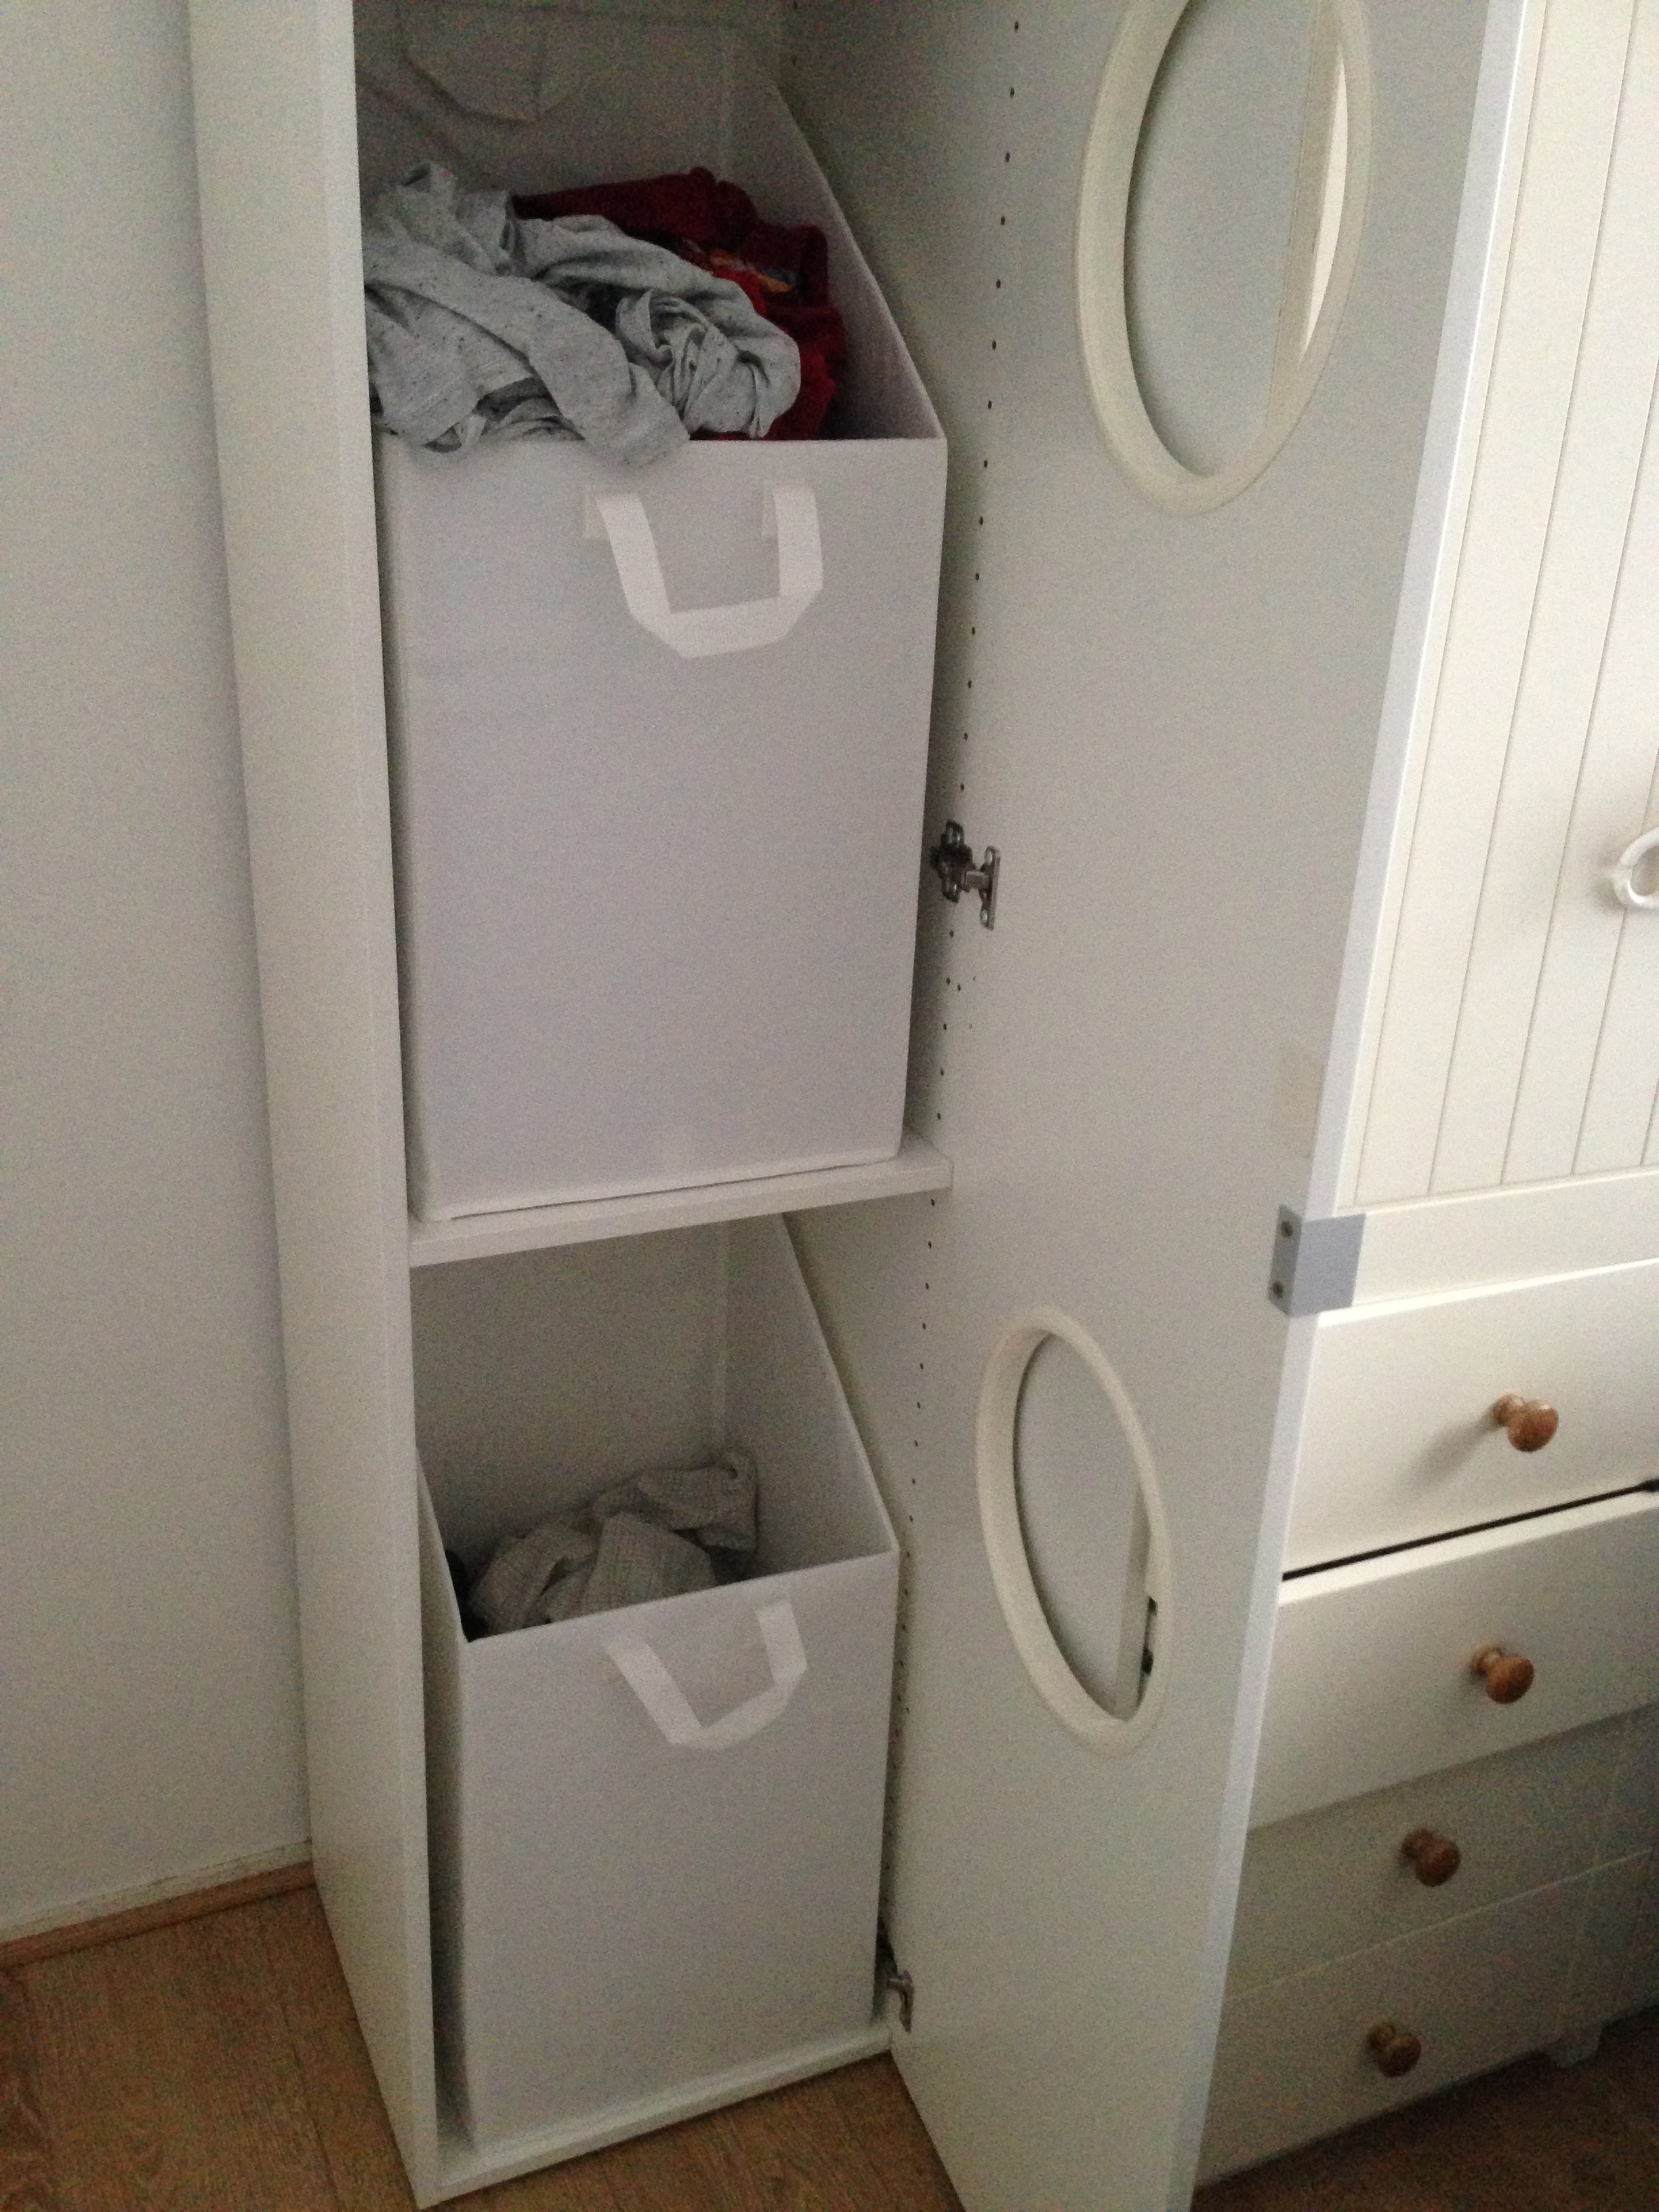 La trouvaille ikea de right un meuble linge sale for Meuble a linge